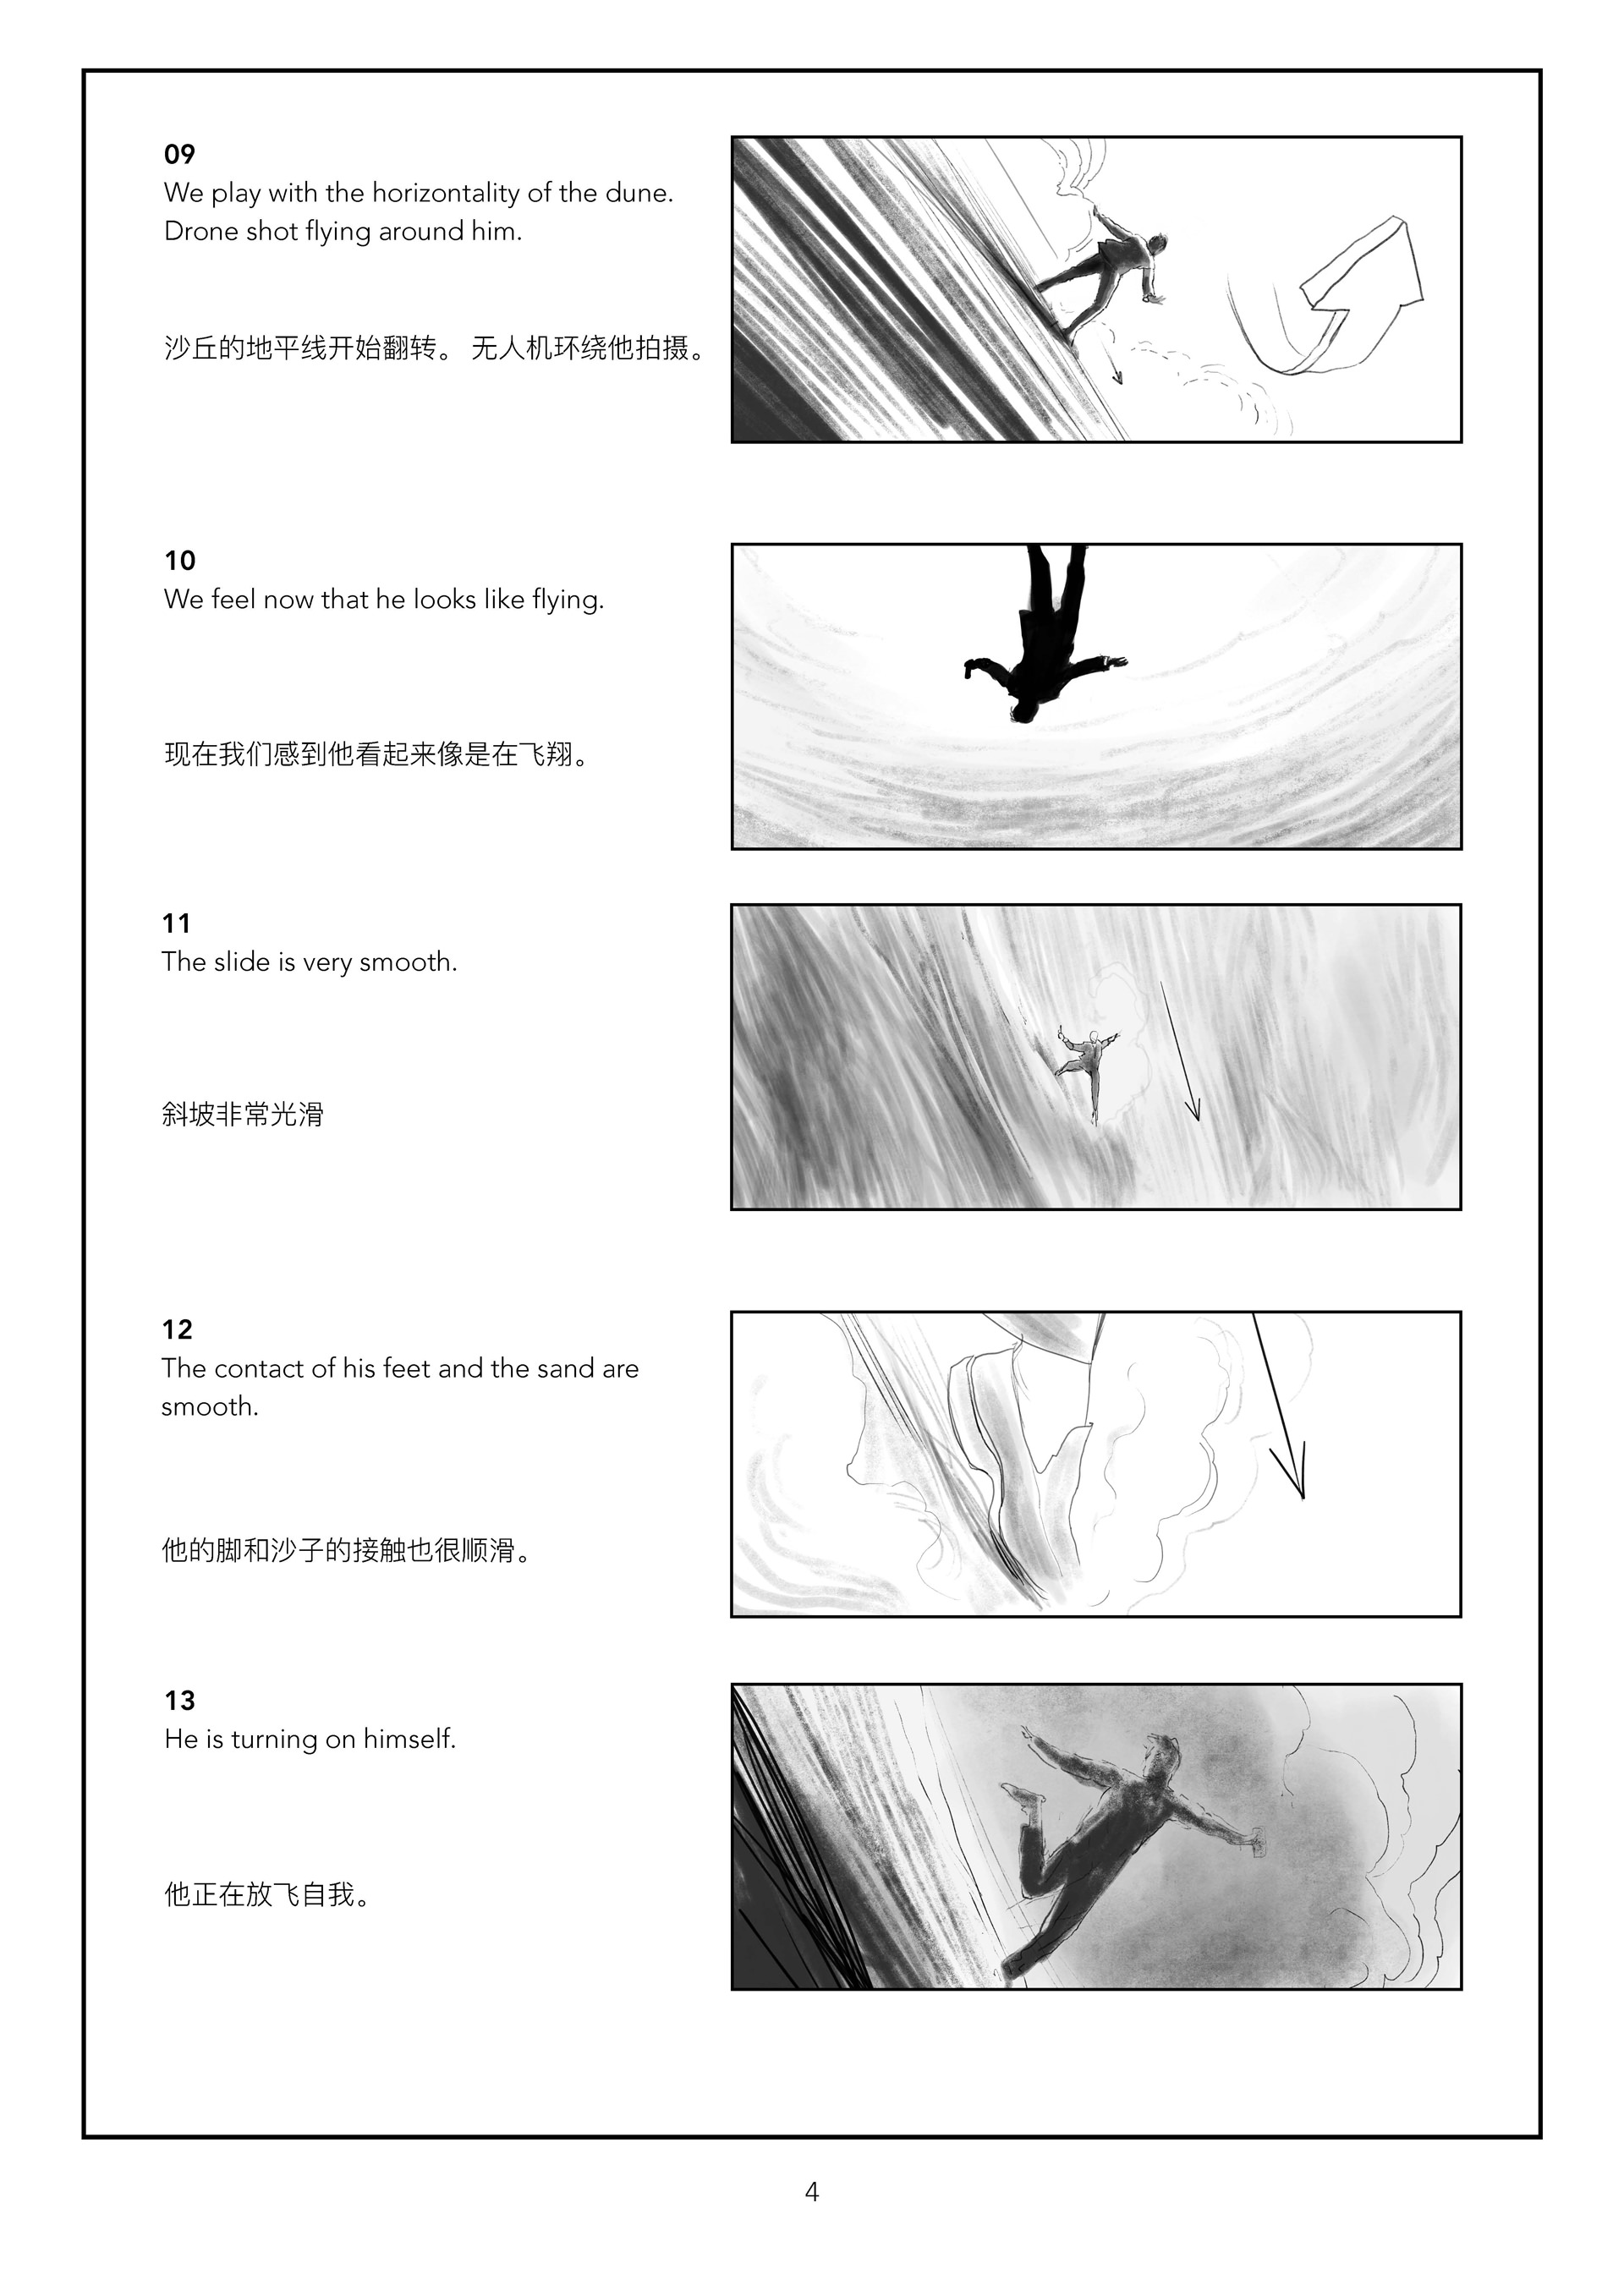 Oppo Compass storyboard 03